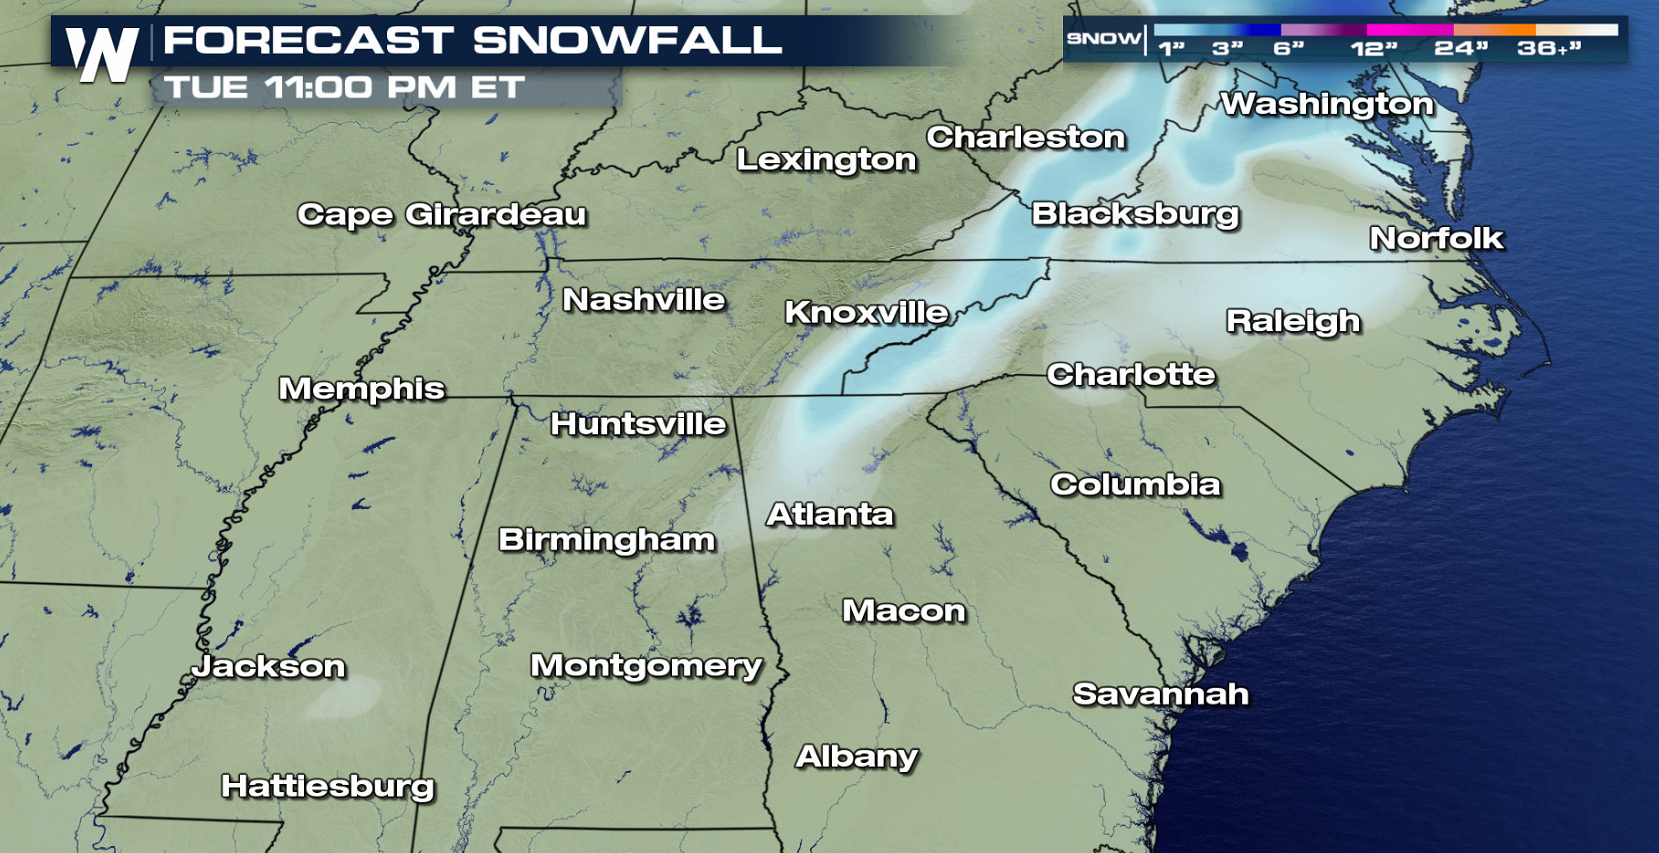 Winter Storm Alerts Posted for the Southeast and